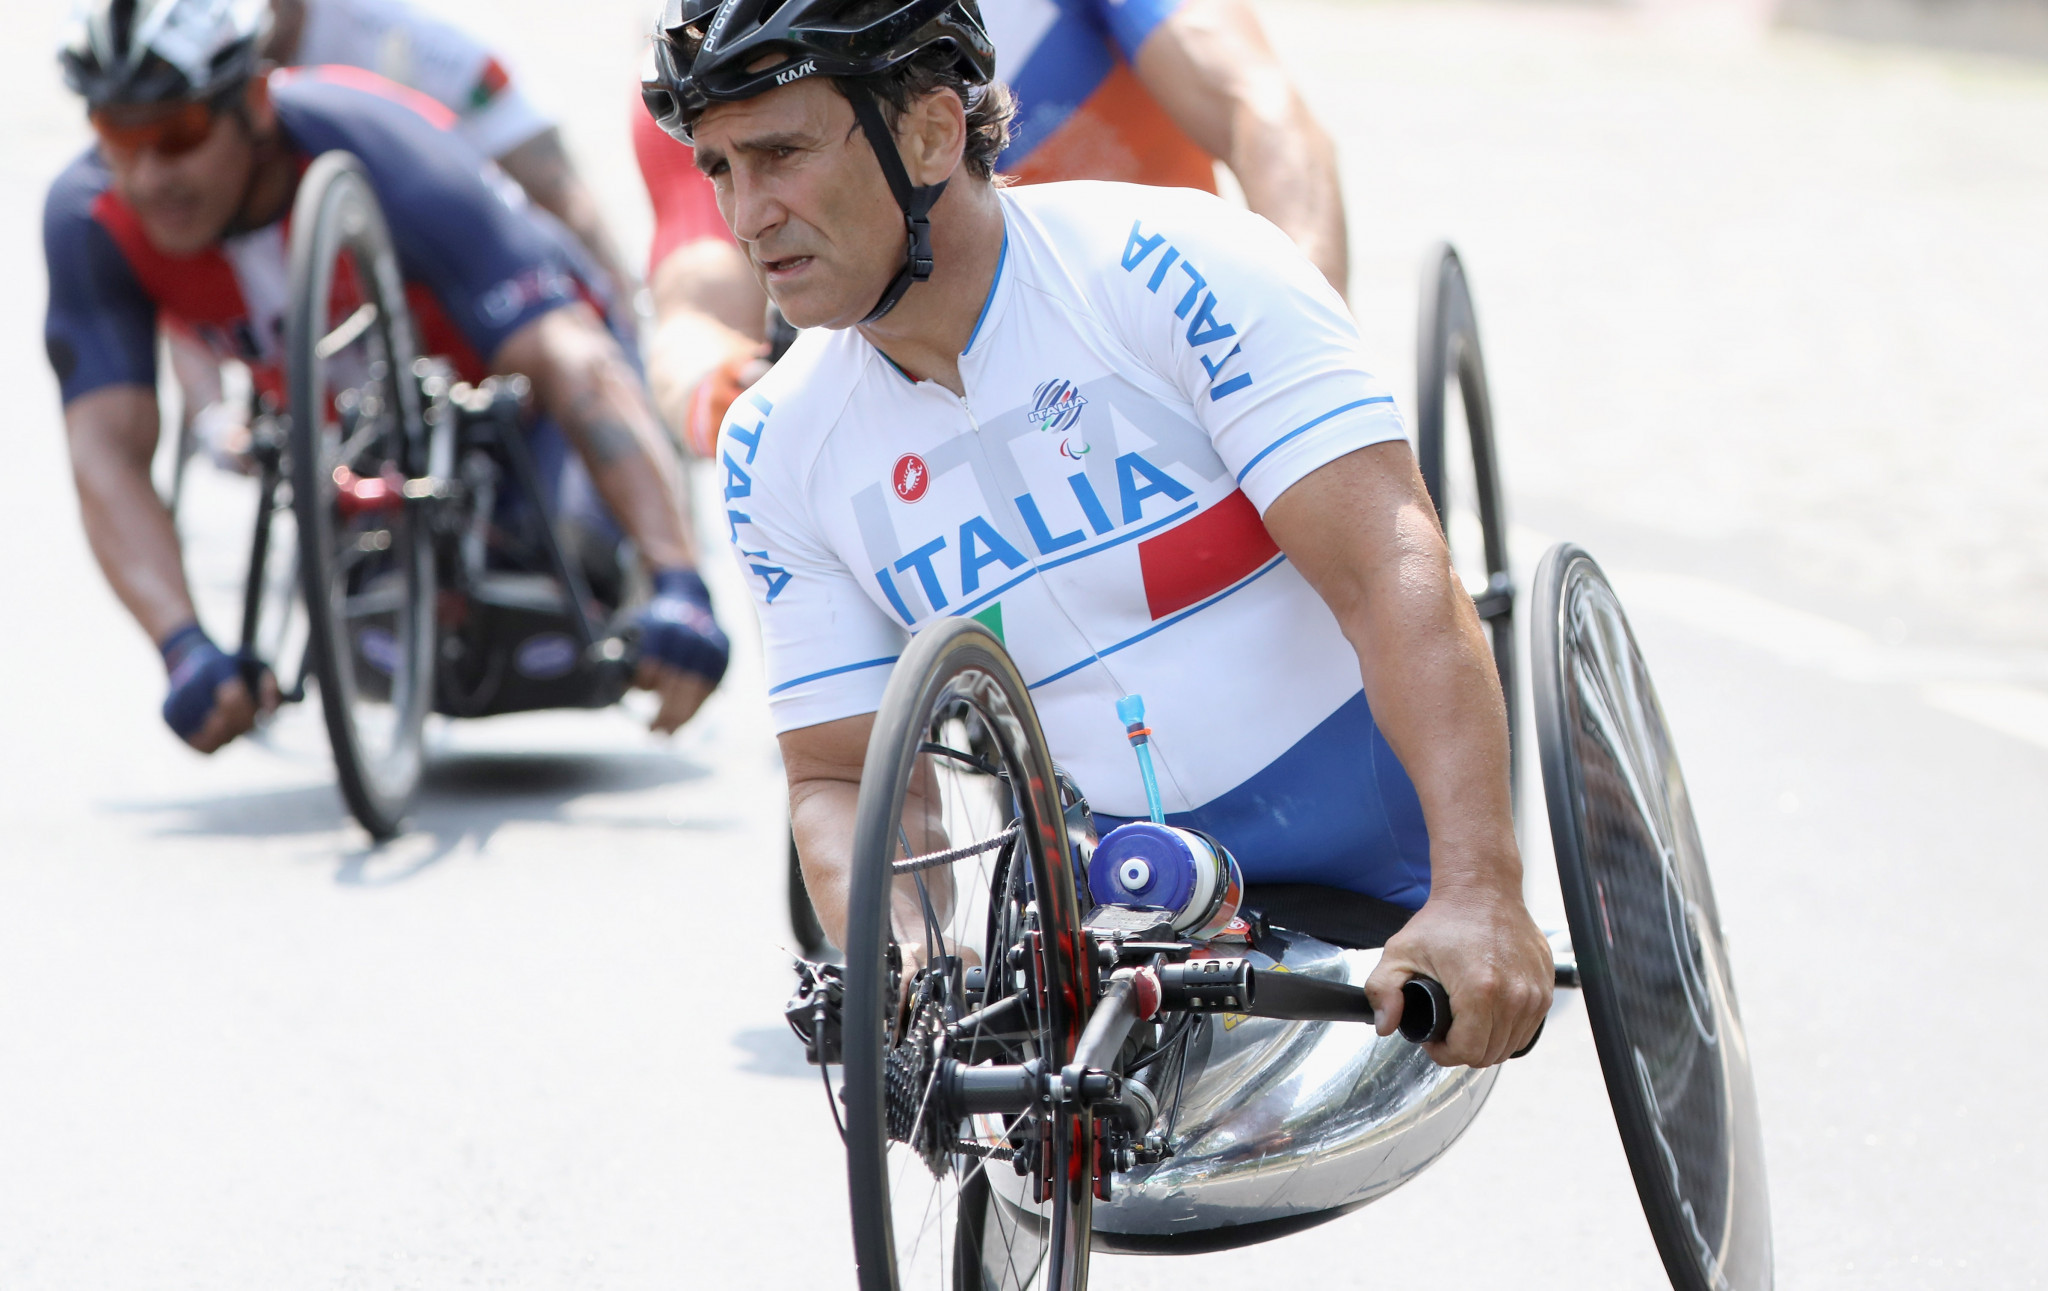 Alessandro Zanardi showed why he is the Paralympic champion in the men's H5 time trial ©Getty Images